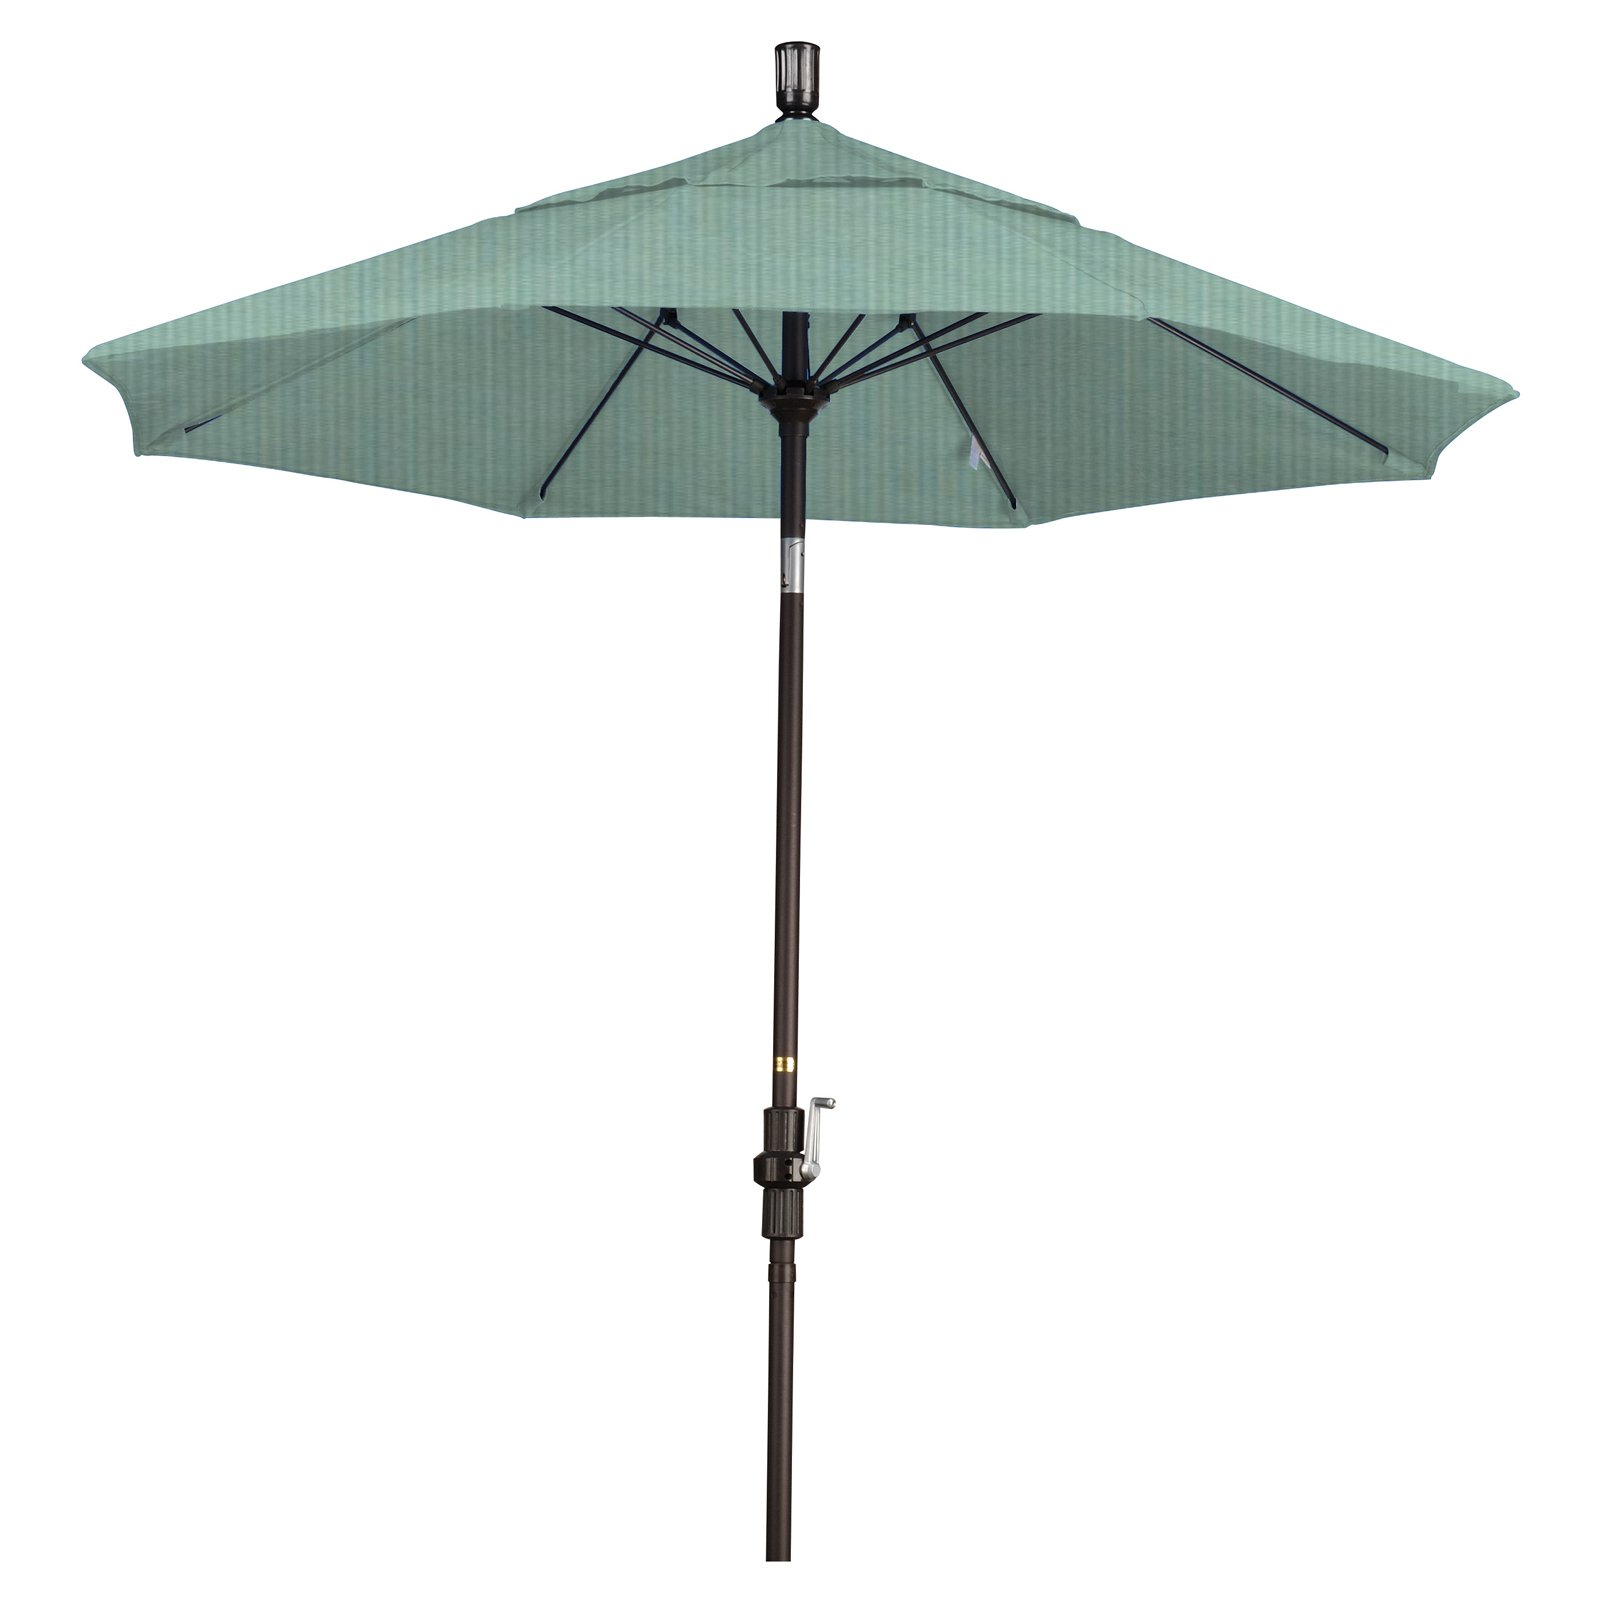 California Umbrella 7.5 ft. Aluminum Collar Tilt Pacifica Patio Umbrella